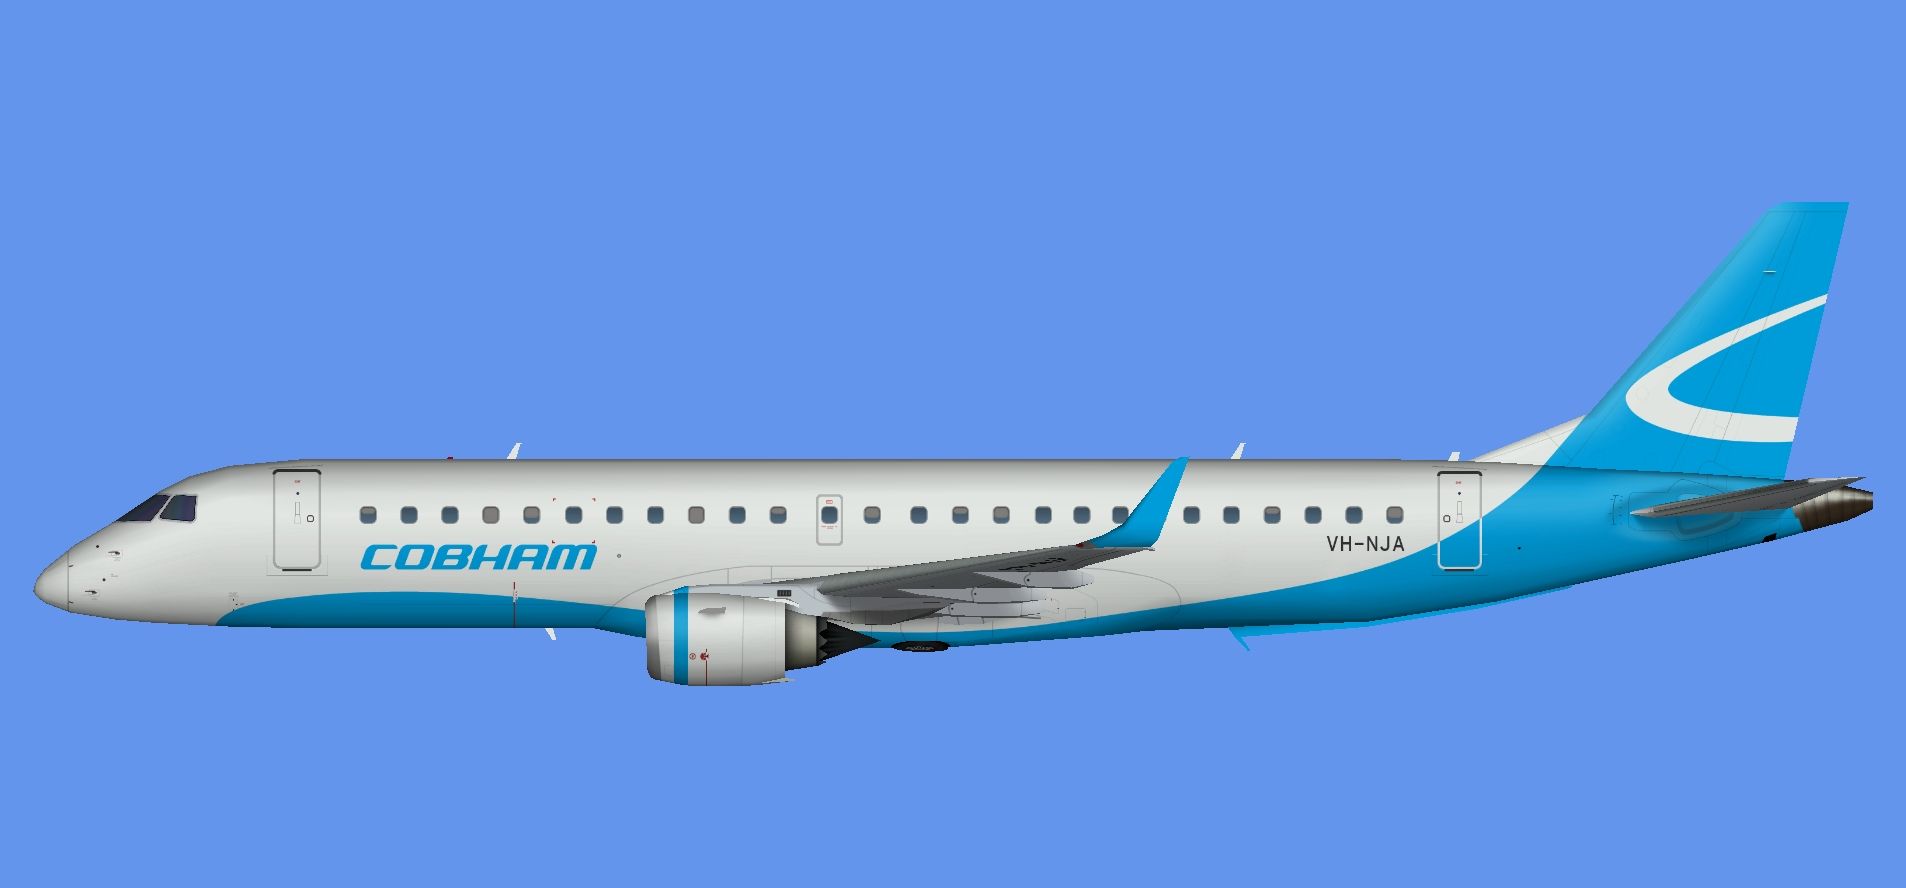 Cobham Aviation Embraer E-190